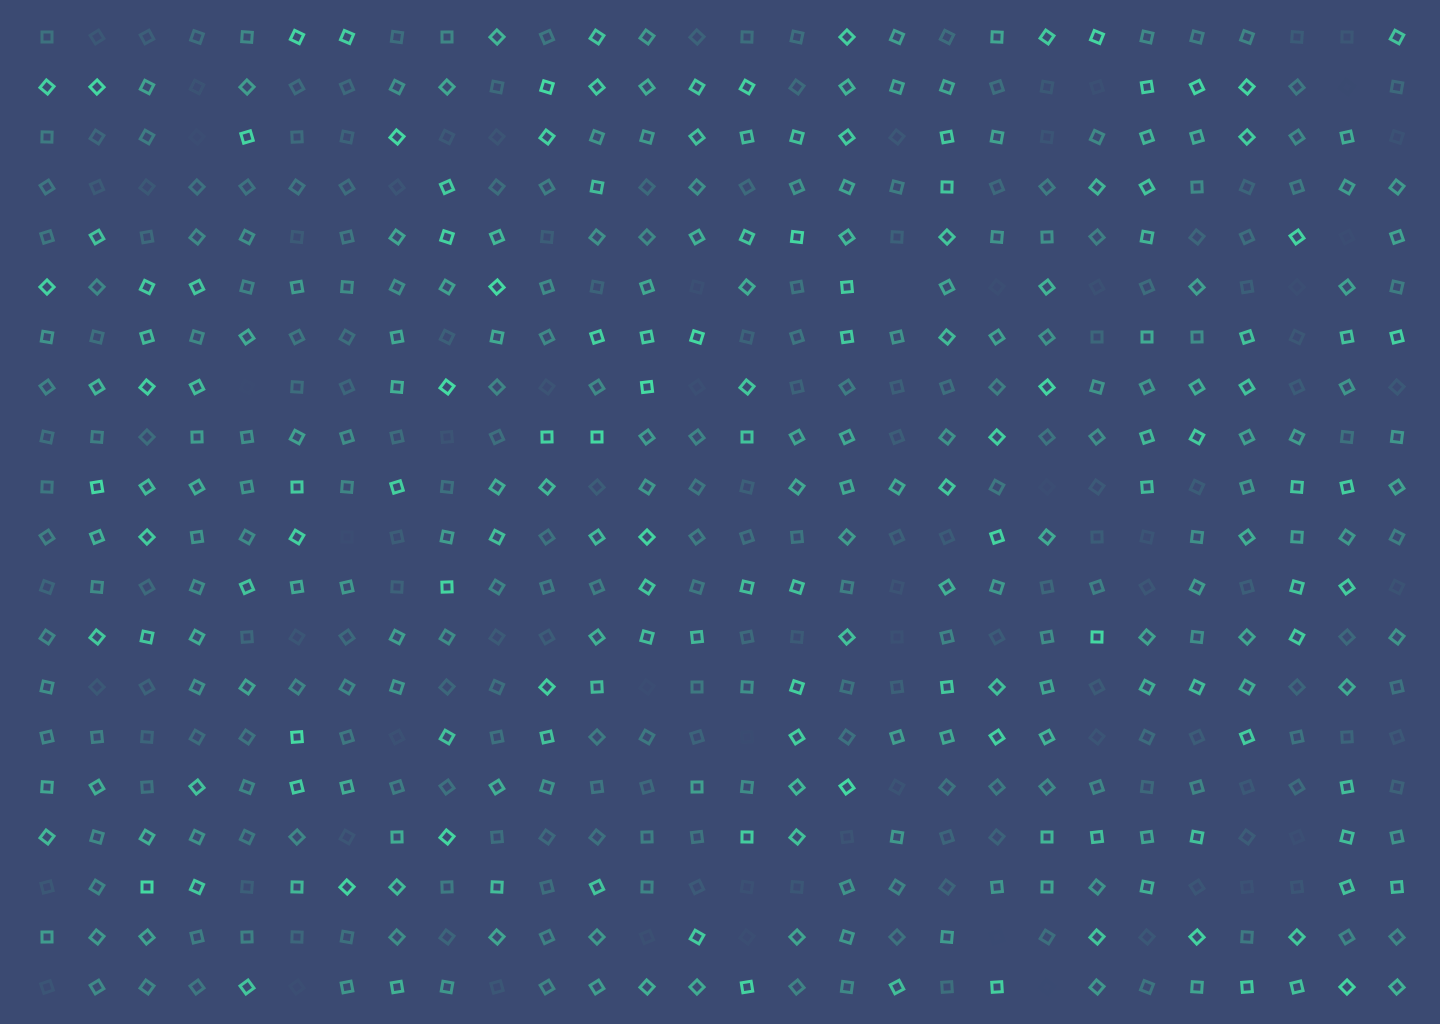 Pattern made with Sketch and Looper